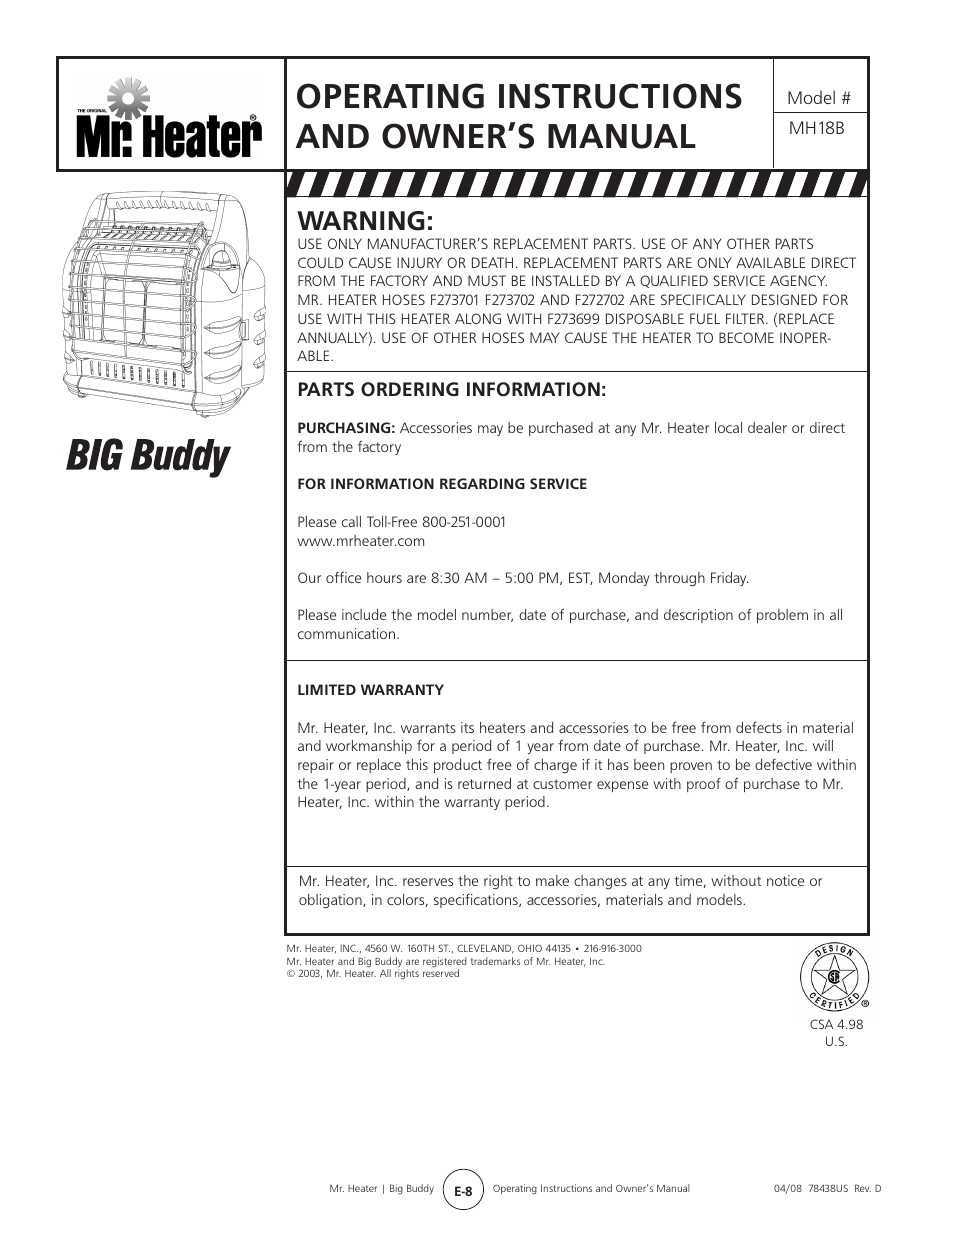 Operating Instructions And Owner S Manual Warning Parts